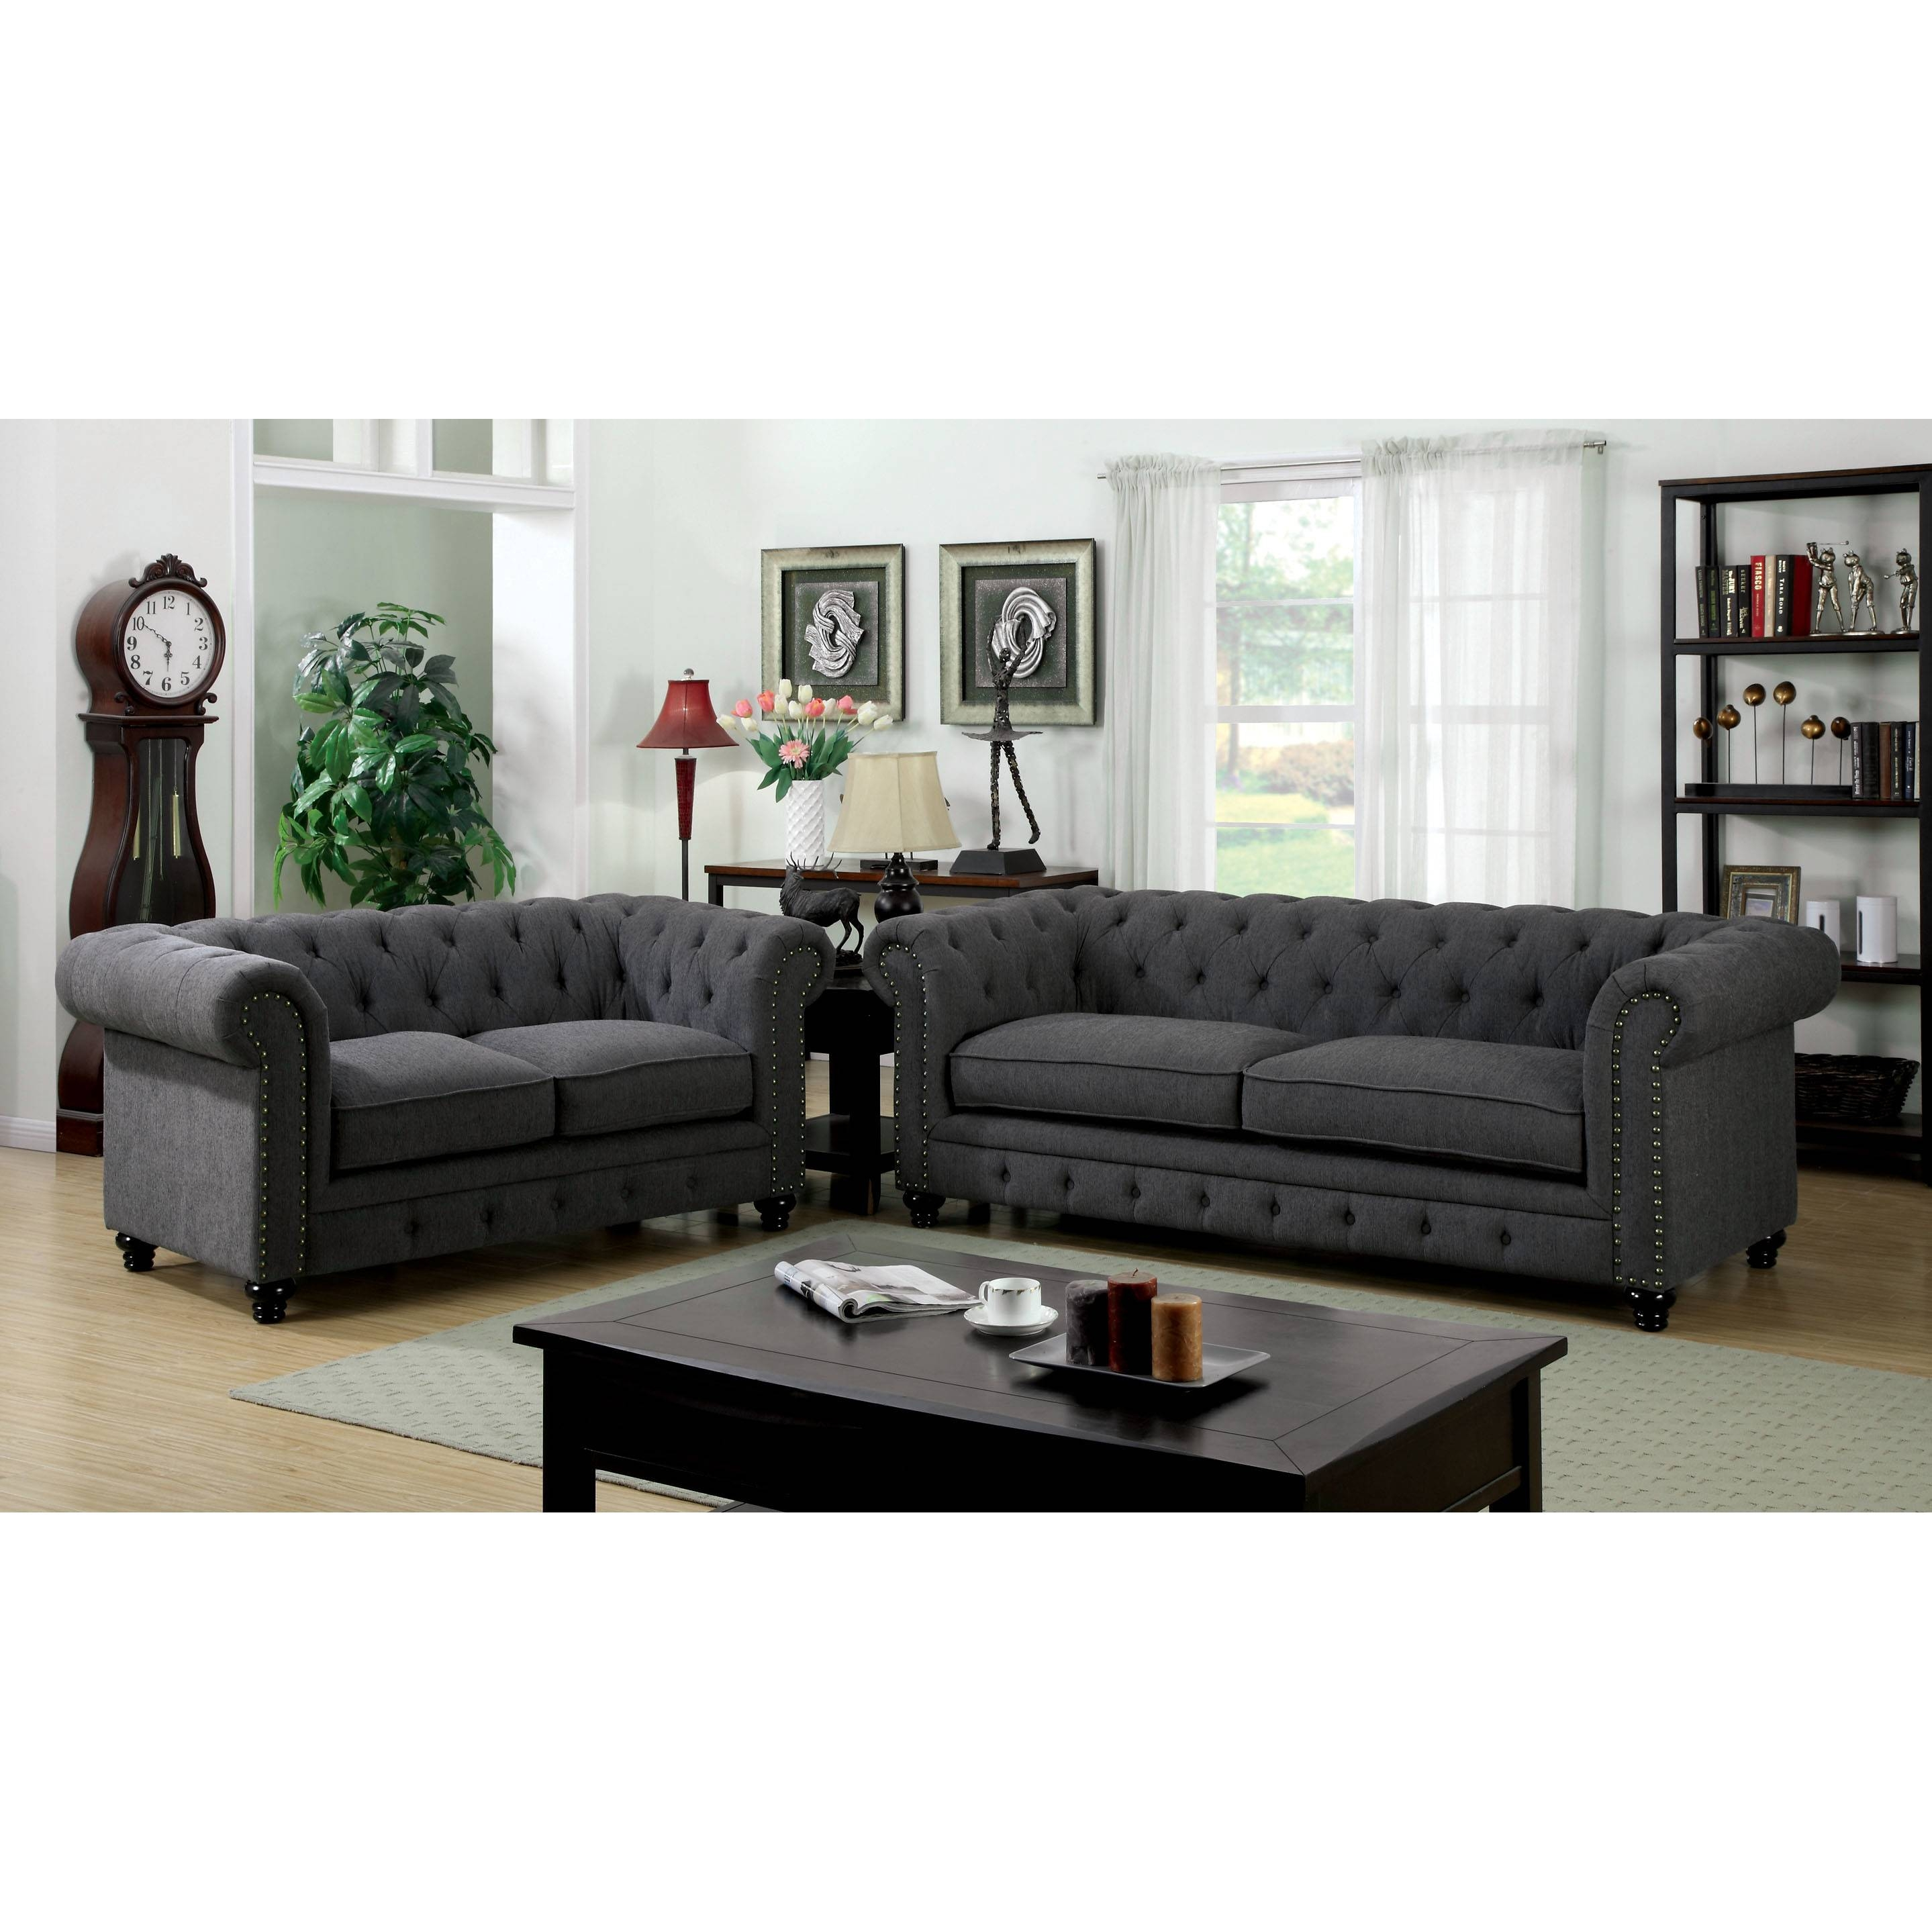 Furniture Entranching Tufted Leather Sofa For Living Room with Affordable Tufted Sofas (Image 5 of 15)